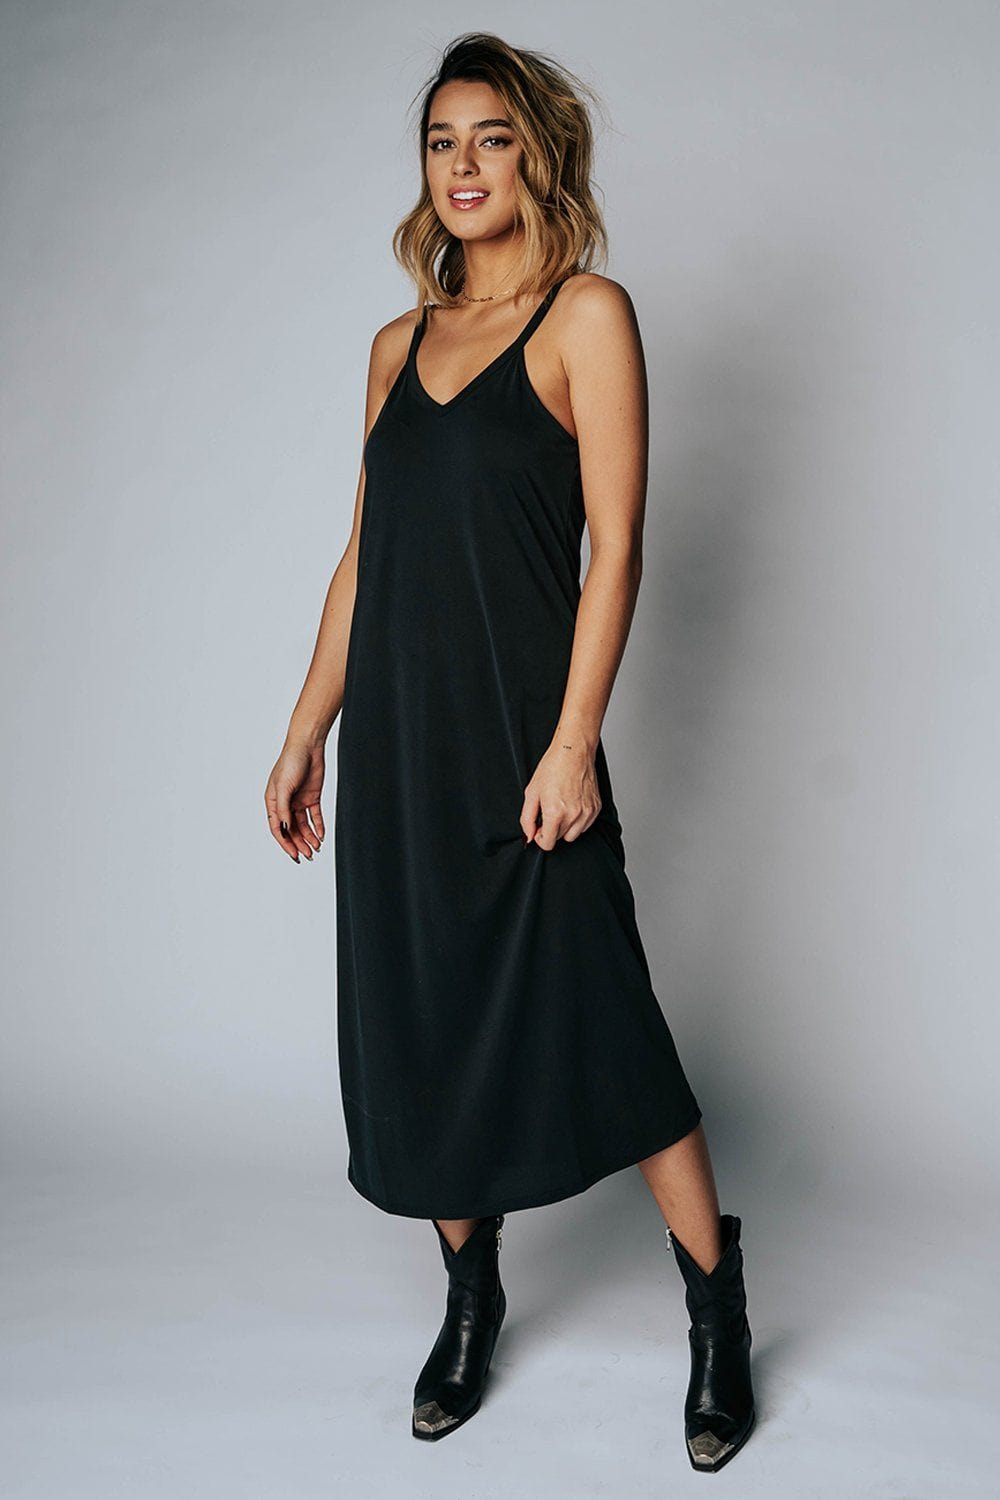 The Abigail Midi Dress in Black, cladandcloth, hyfve.